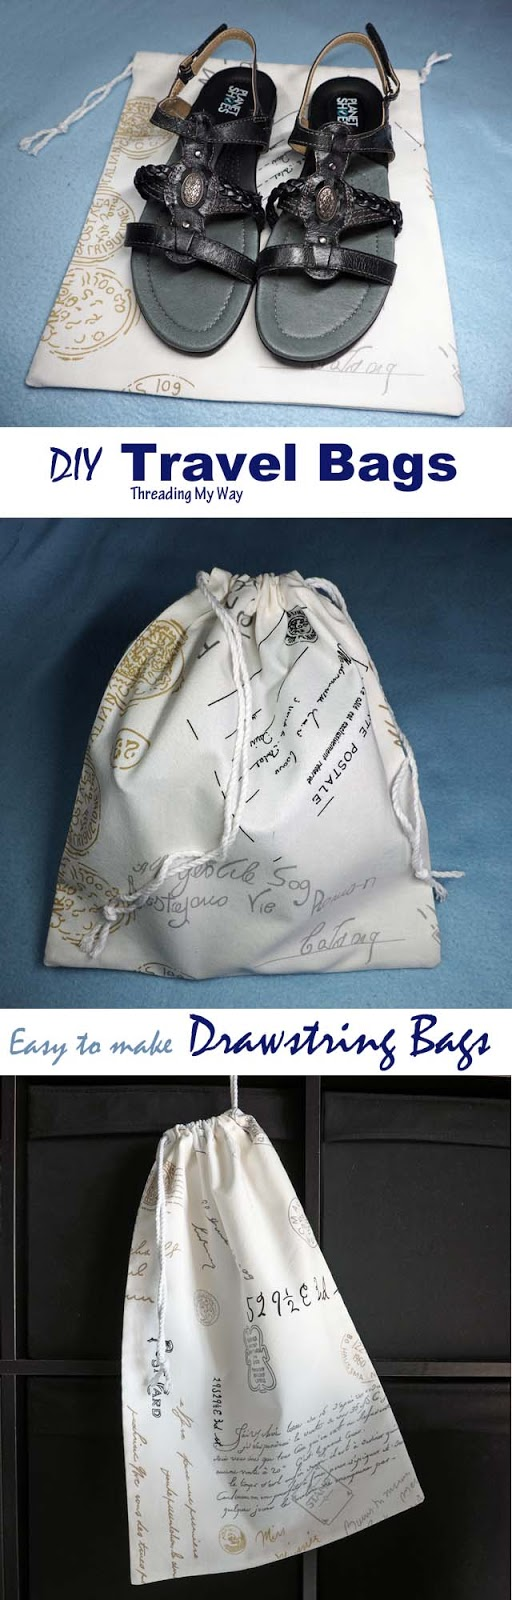 Learn how to make travel storage bags - drawstring bag tutorial - Threading My Way